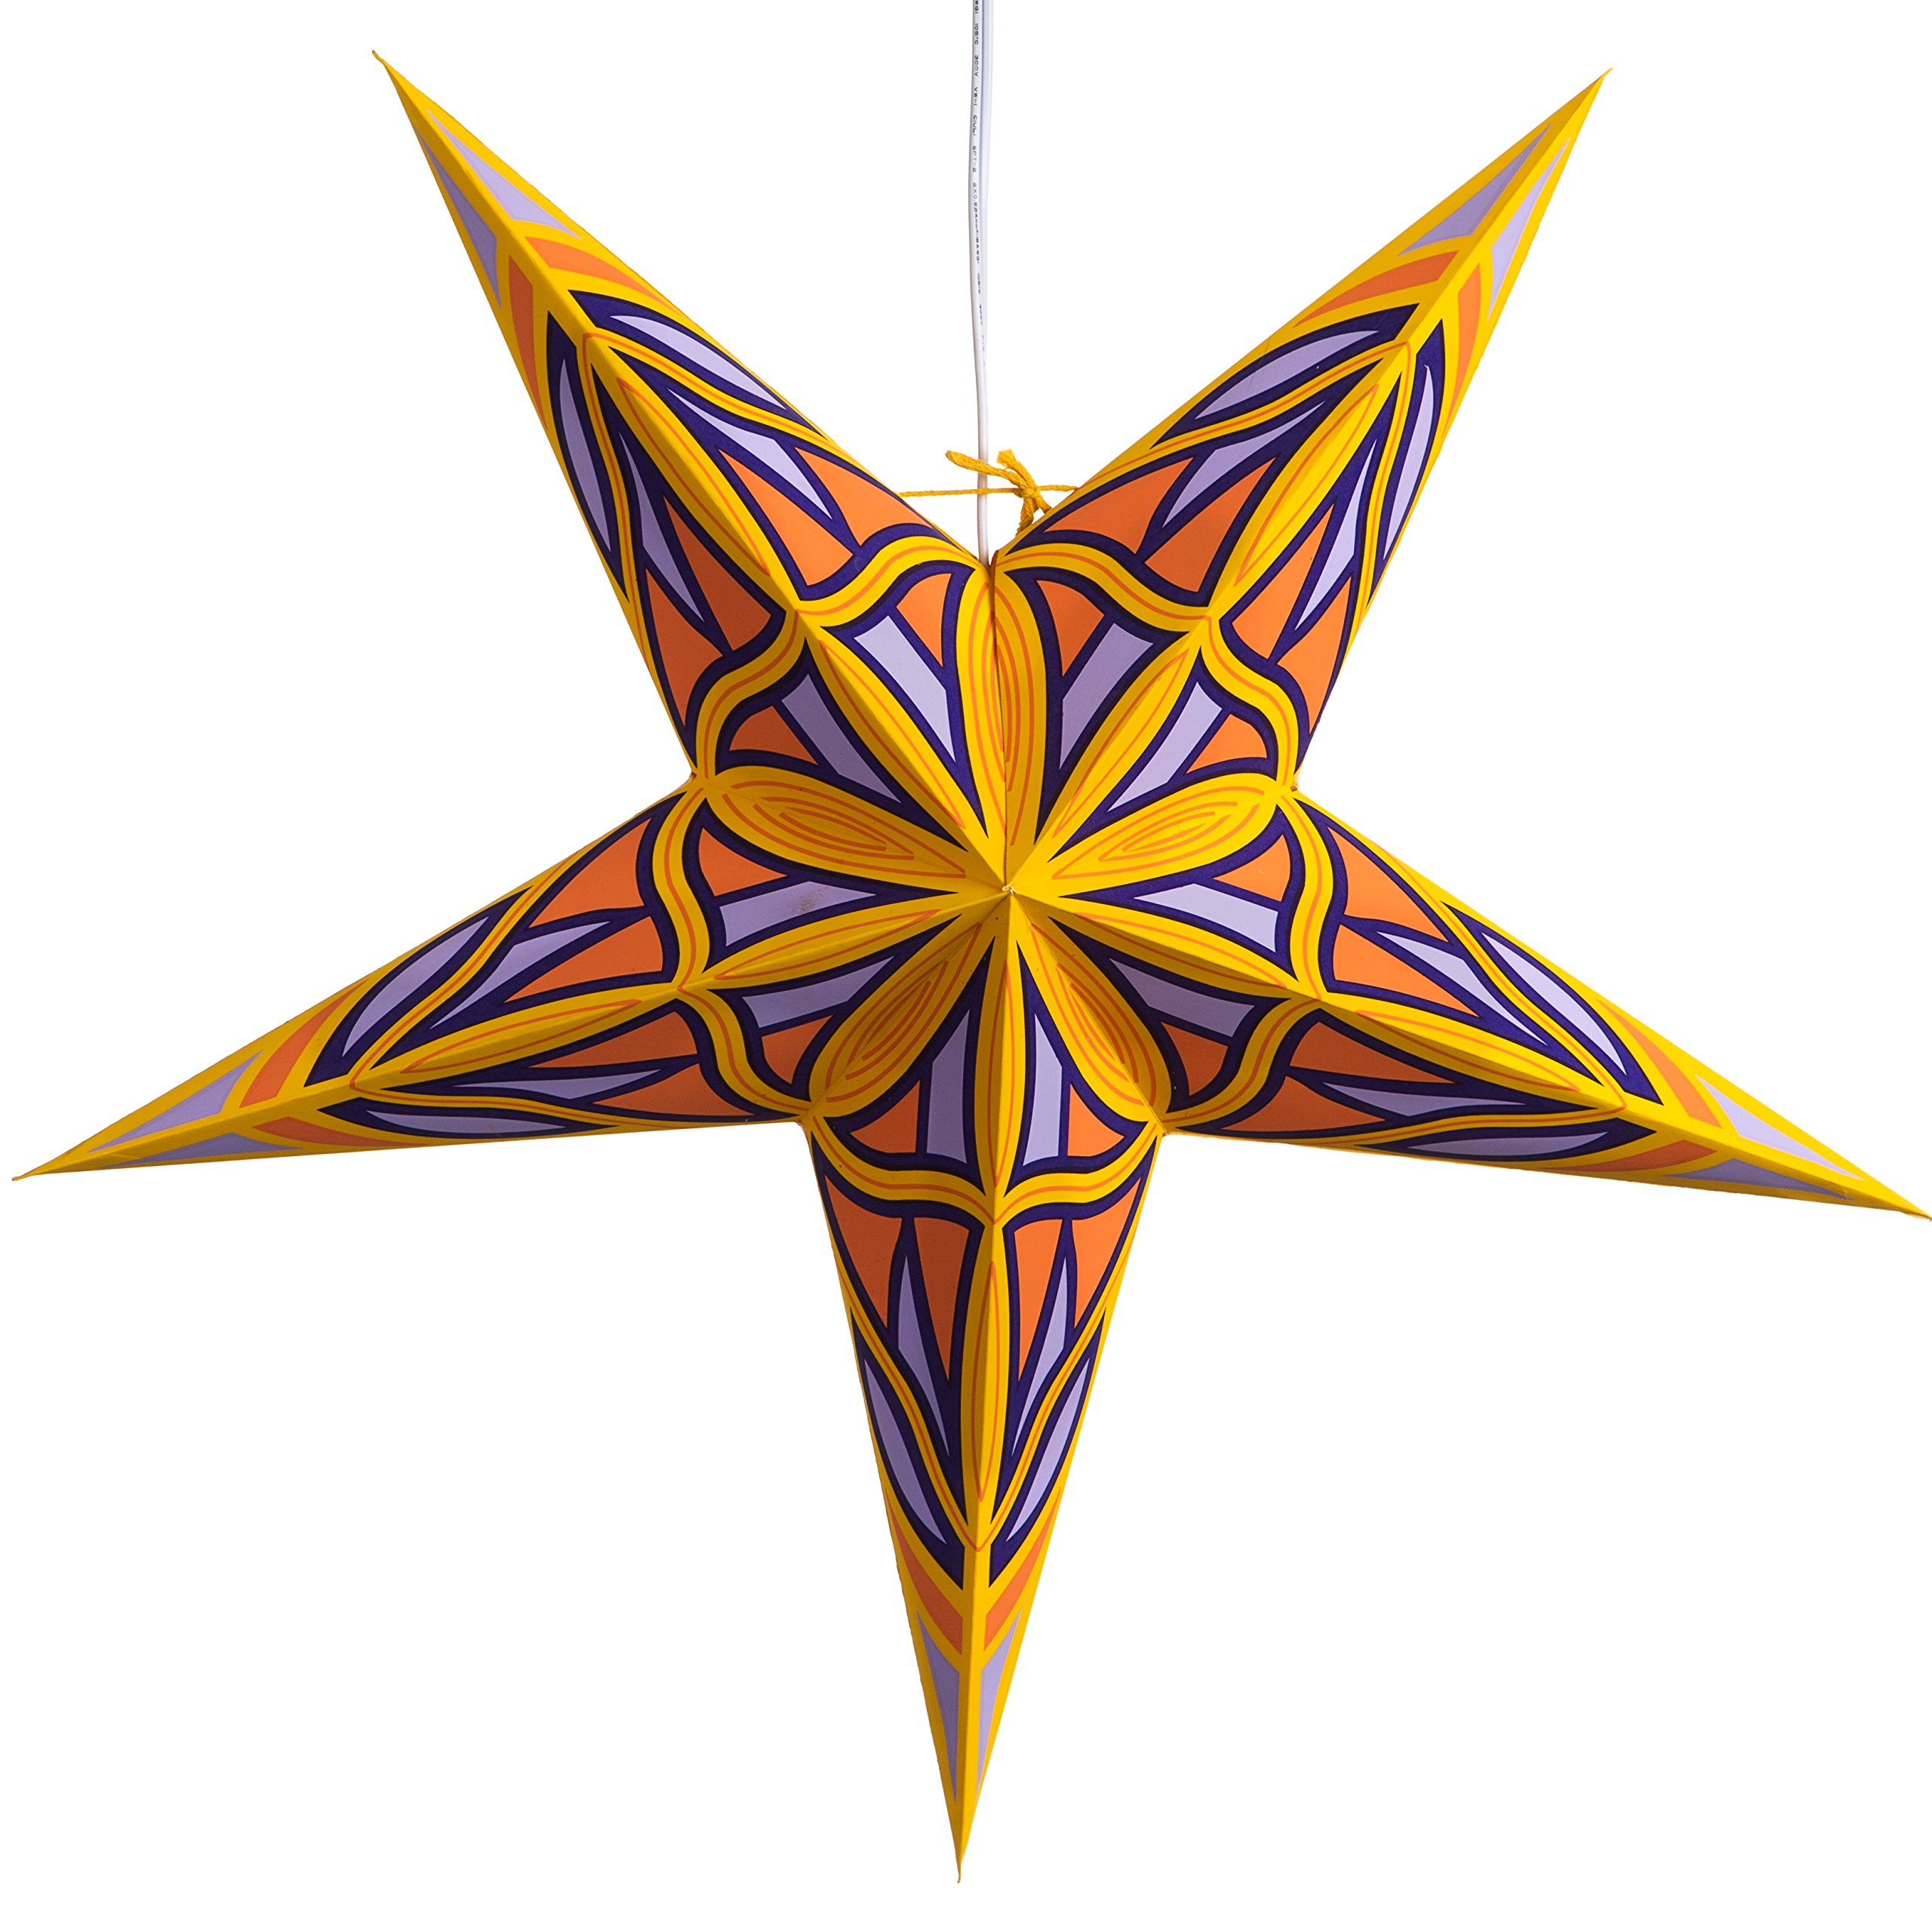 Mosaic Paper Star Lantern with 12 Foot Power Cord Included